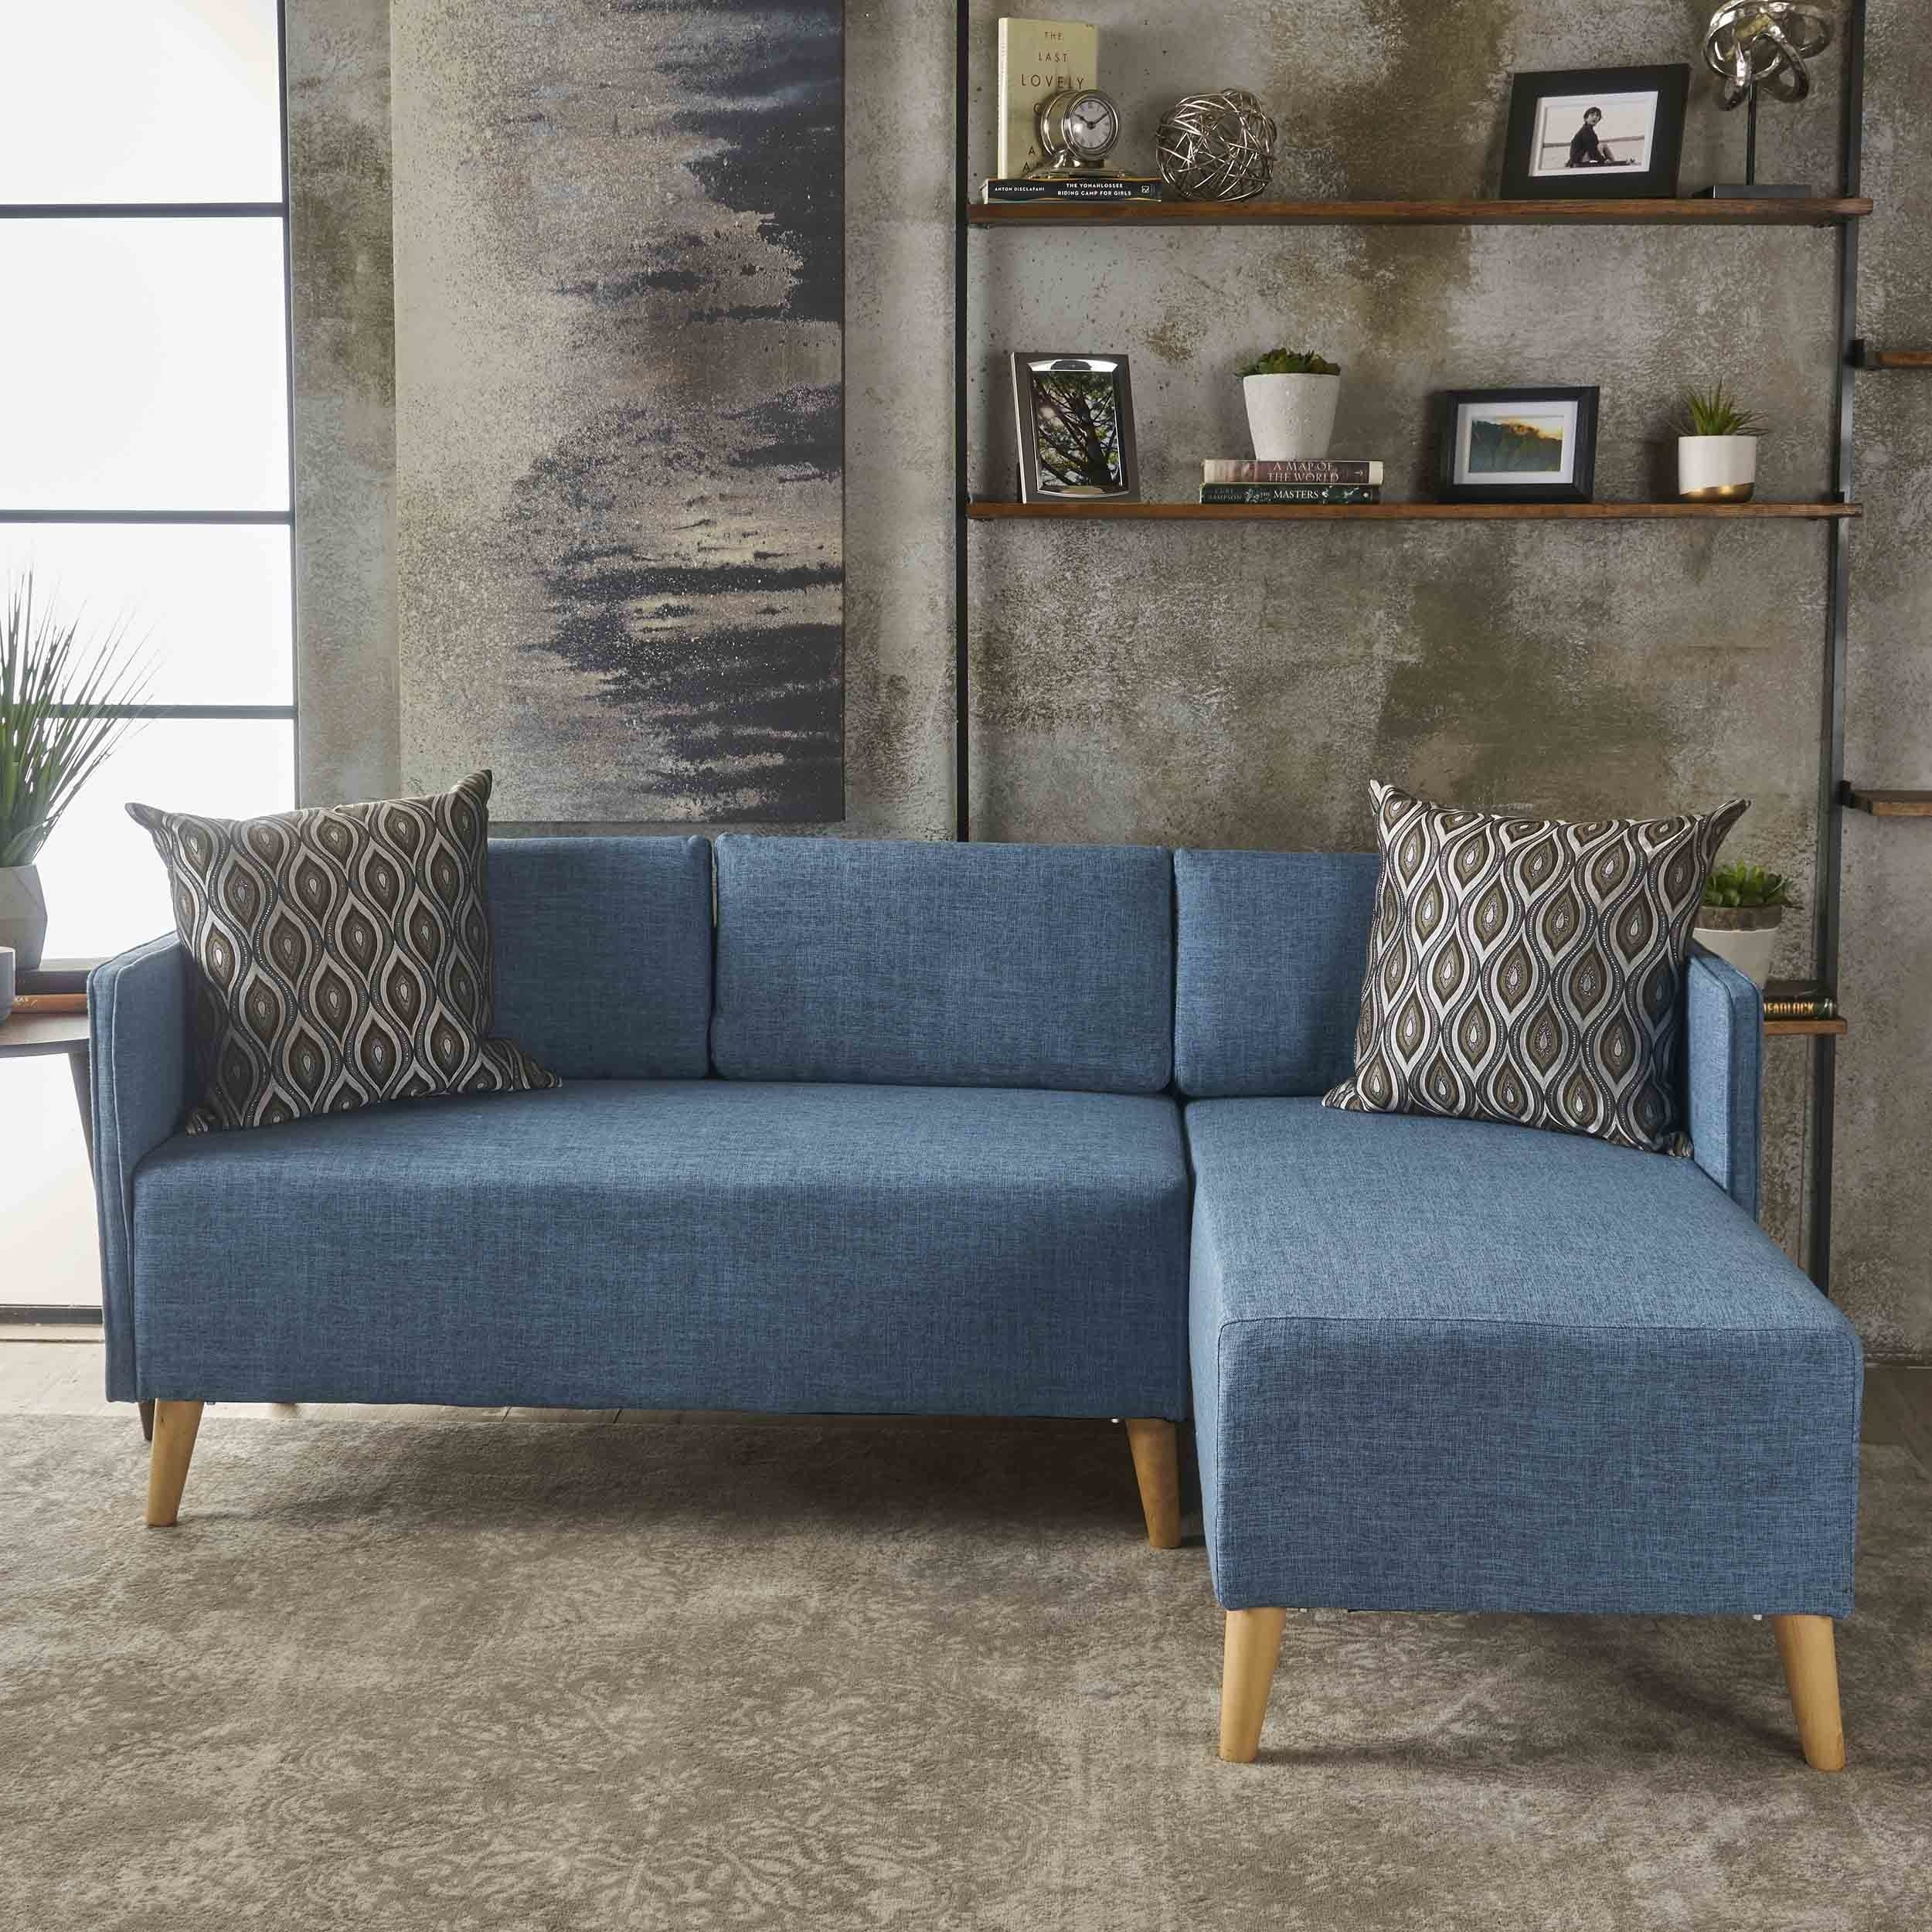 2 Piece Chaise Sectional Sofa | Baci Living Room for Tenny Dark Grey 2 Piece Left Facing Chaise Sectionals With 2 Headrest (Image 1 of 30)